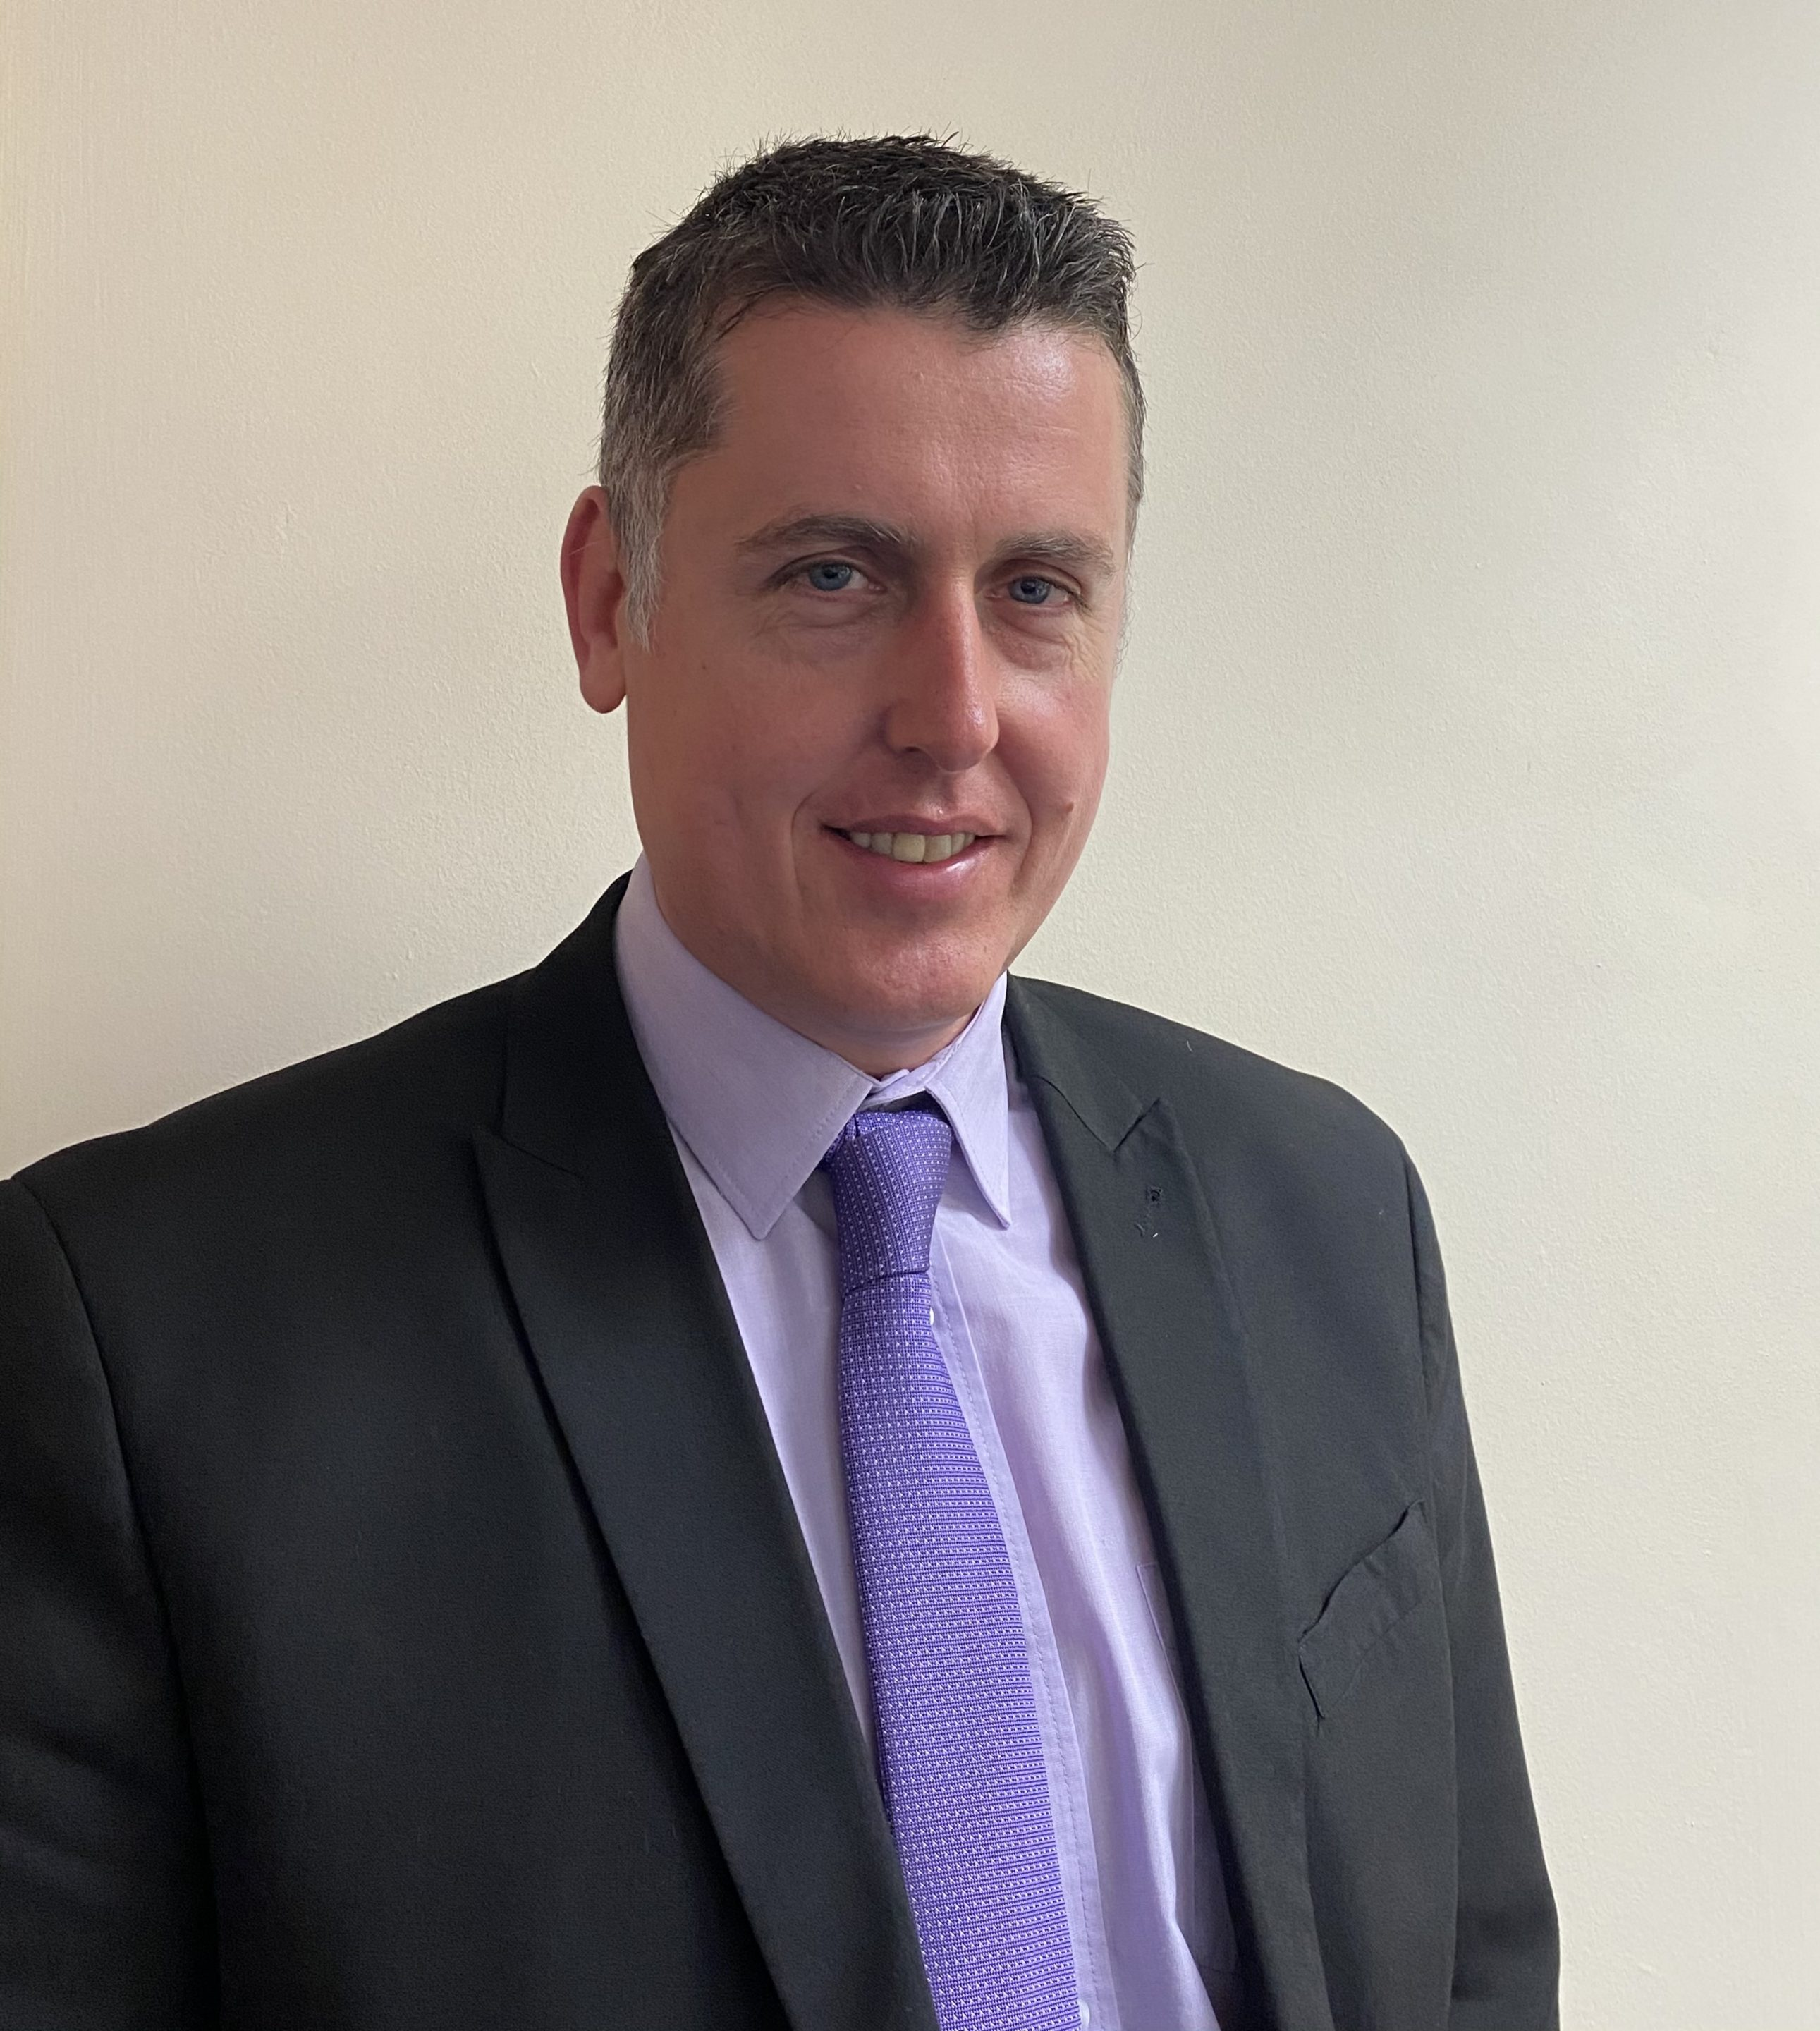 Aaron Hemmington is a tax manager at Hawsons